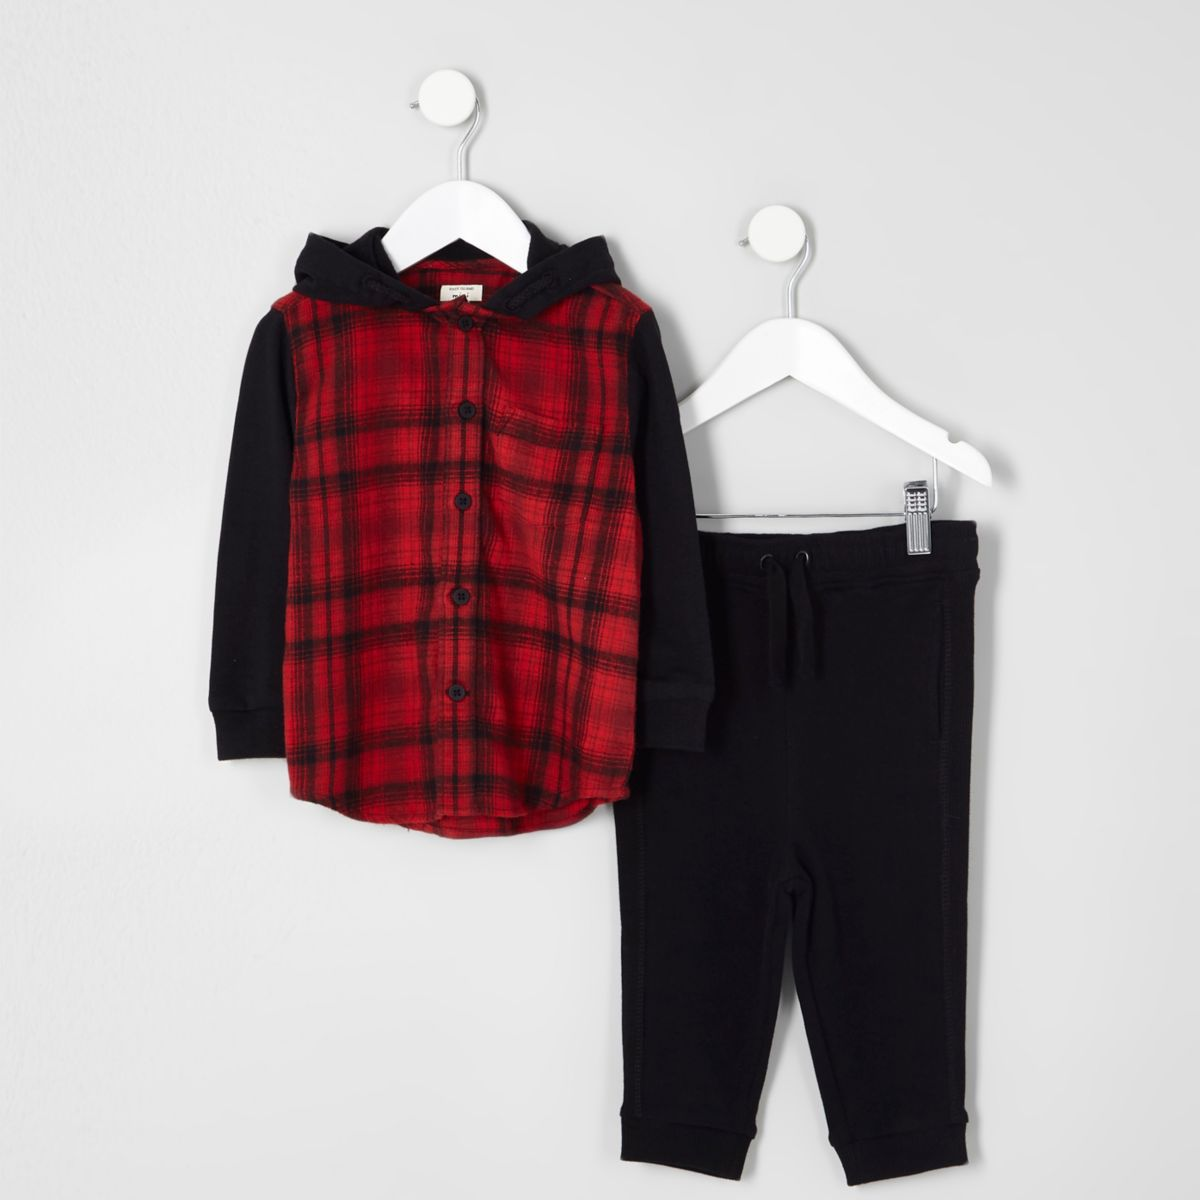 Ensemble pantalon de jogging et sweat à capuche à carreaux rouge mini garçon